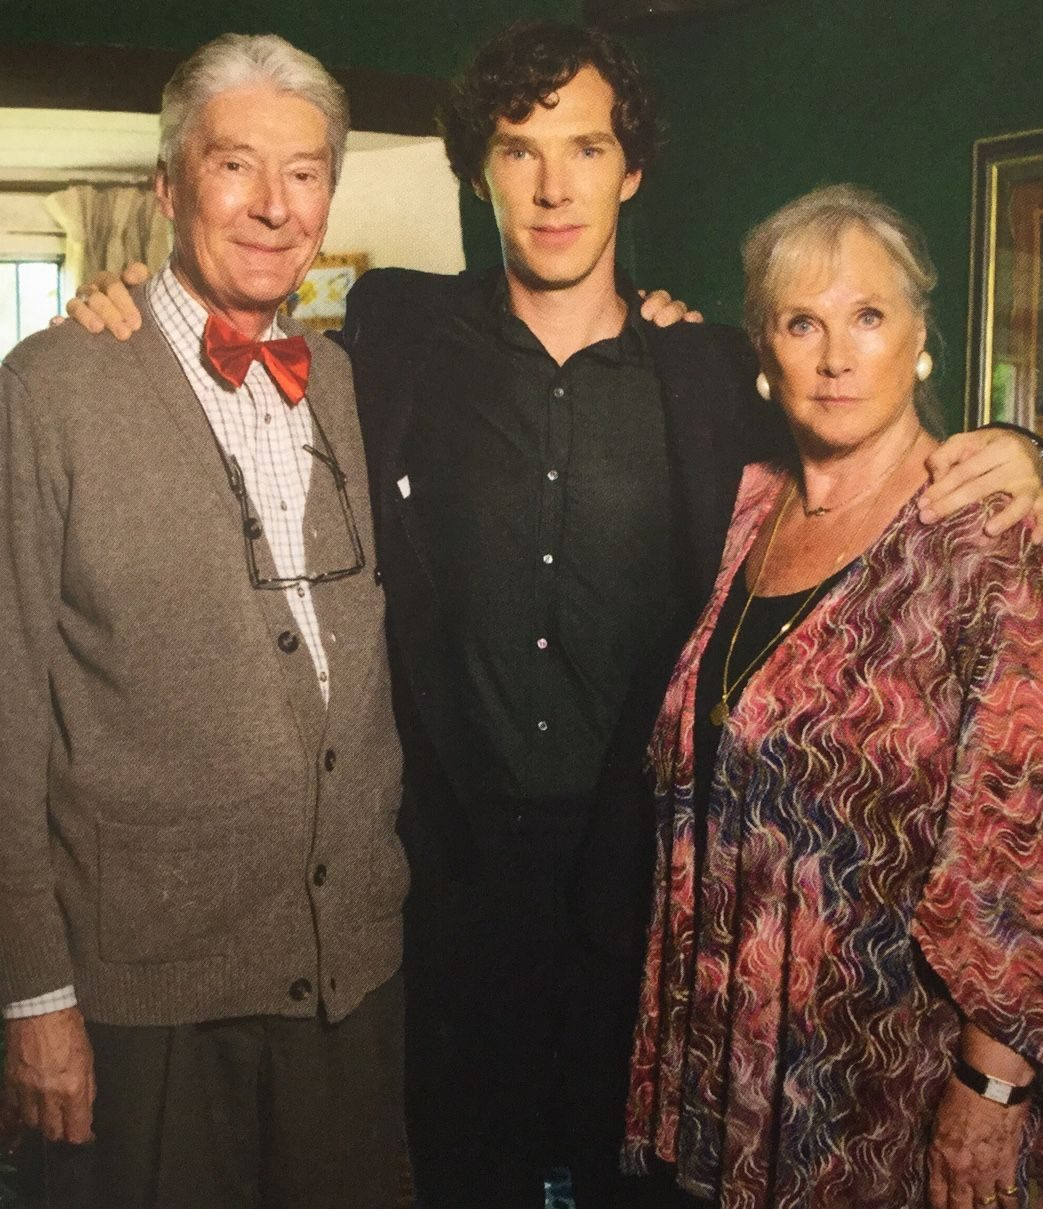 benedict 10 e1558352432674 20 Things You Probably Never Knew About Benedict Cumberbatch